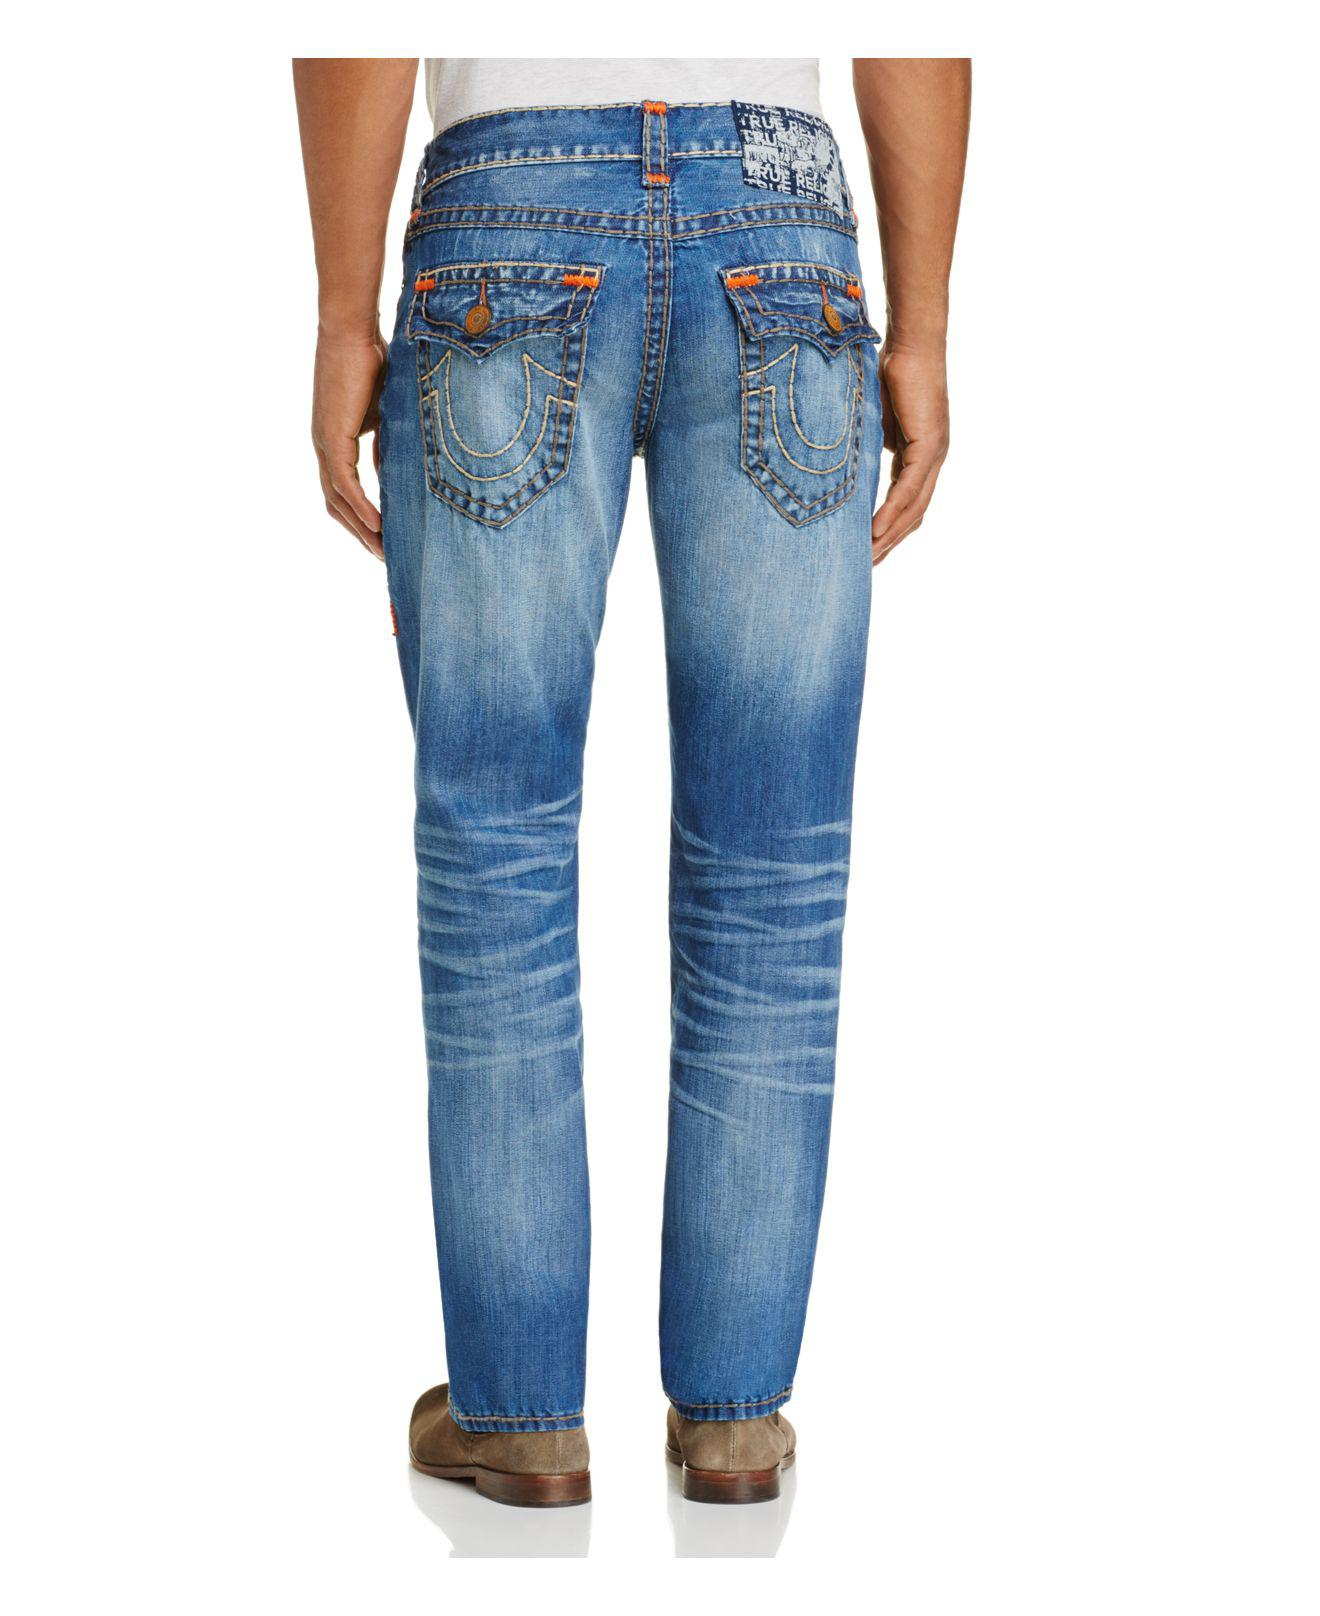 5a25eb6d382ea Lyst - True Religion Ricky Relaxed Fit Jeans In Cape Town in Blue ...